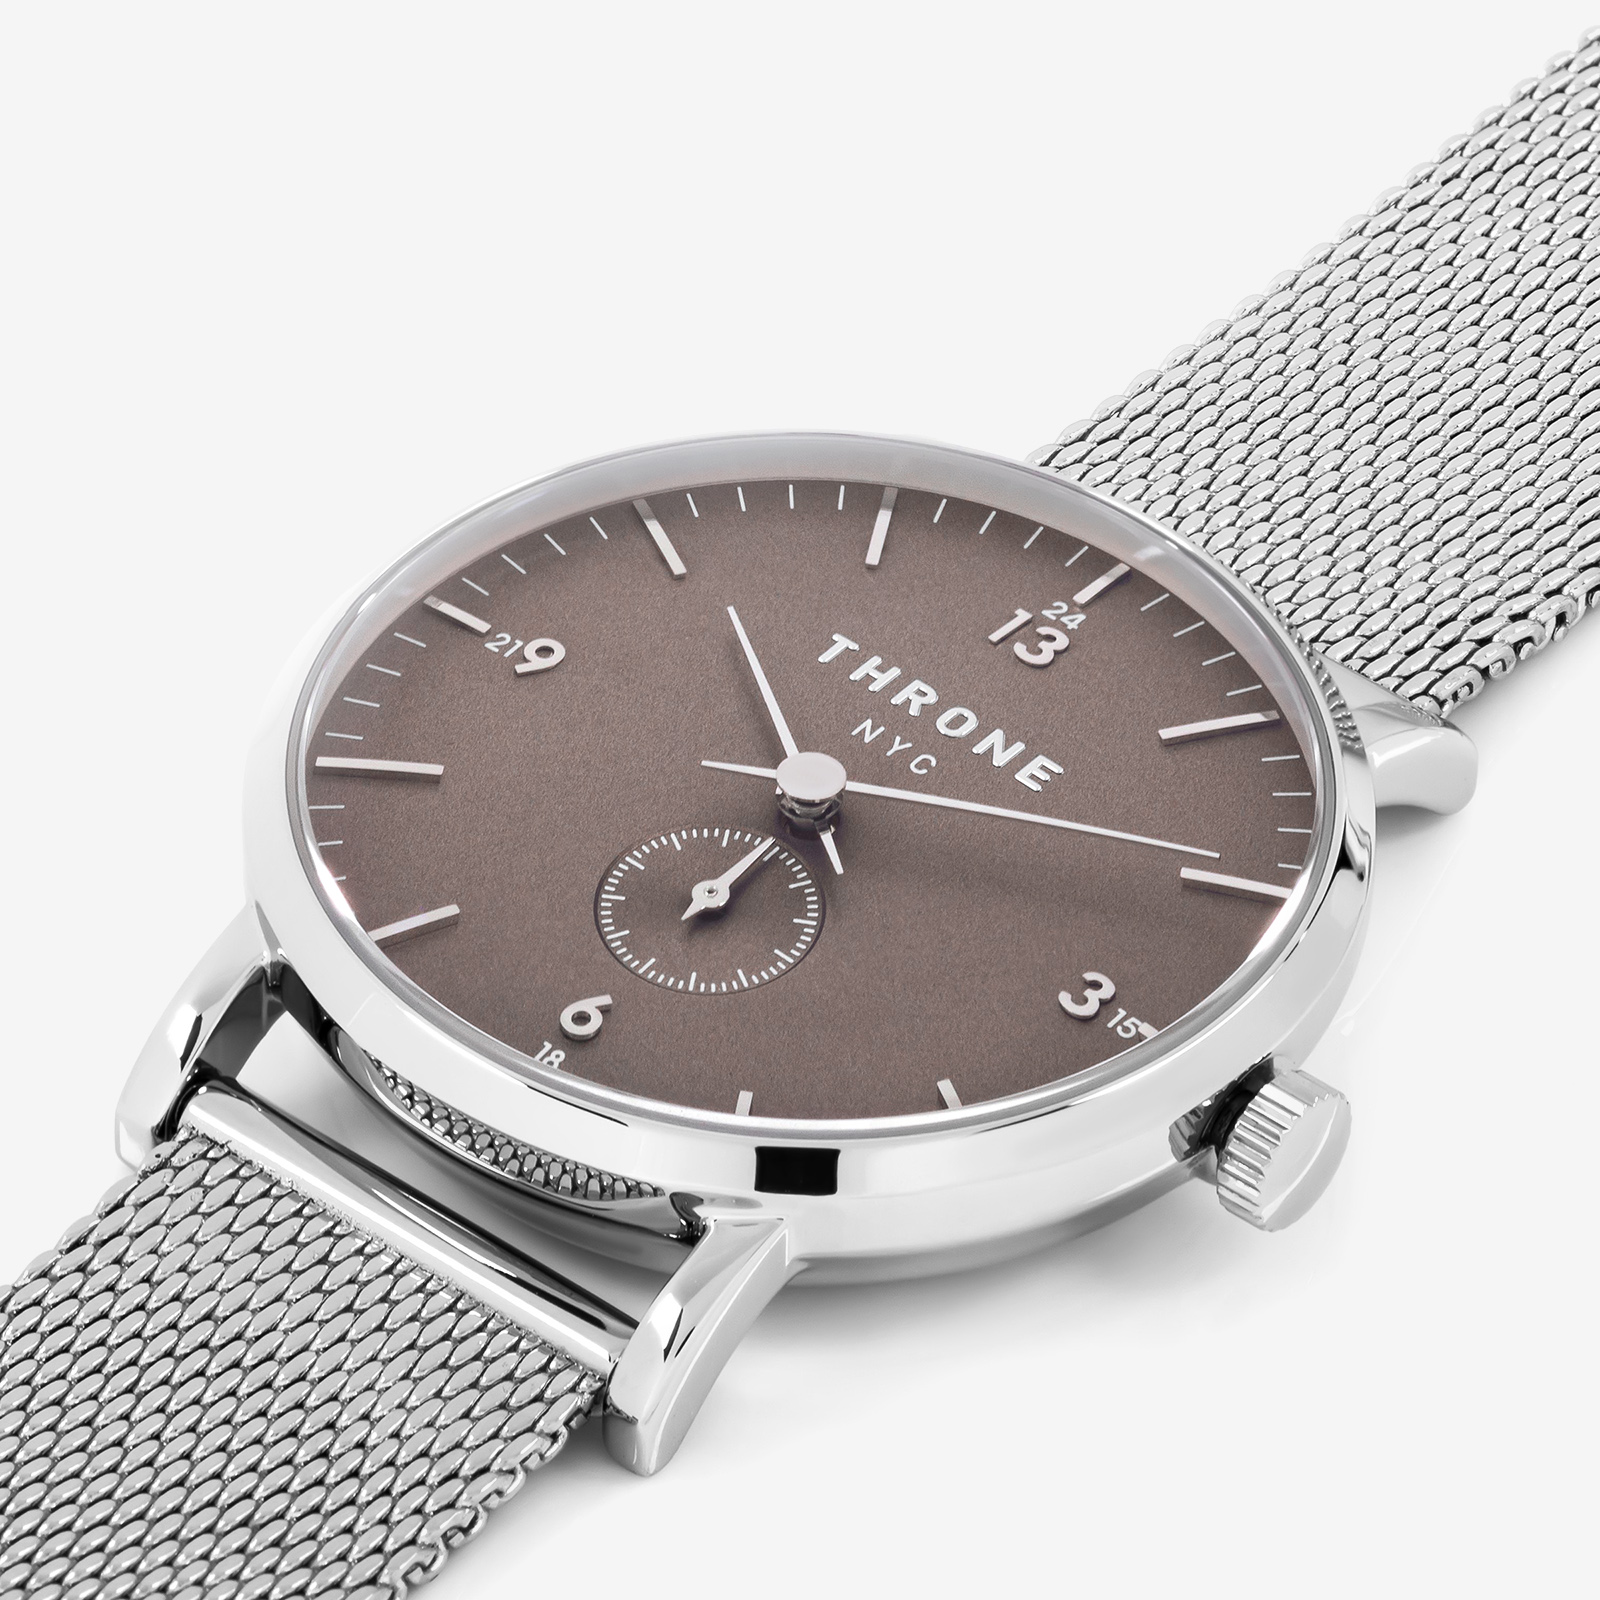 Watch product photo